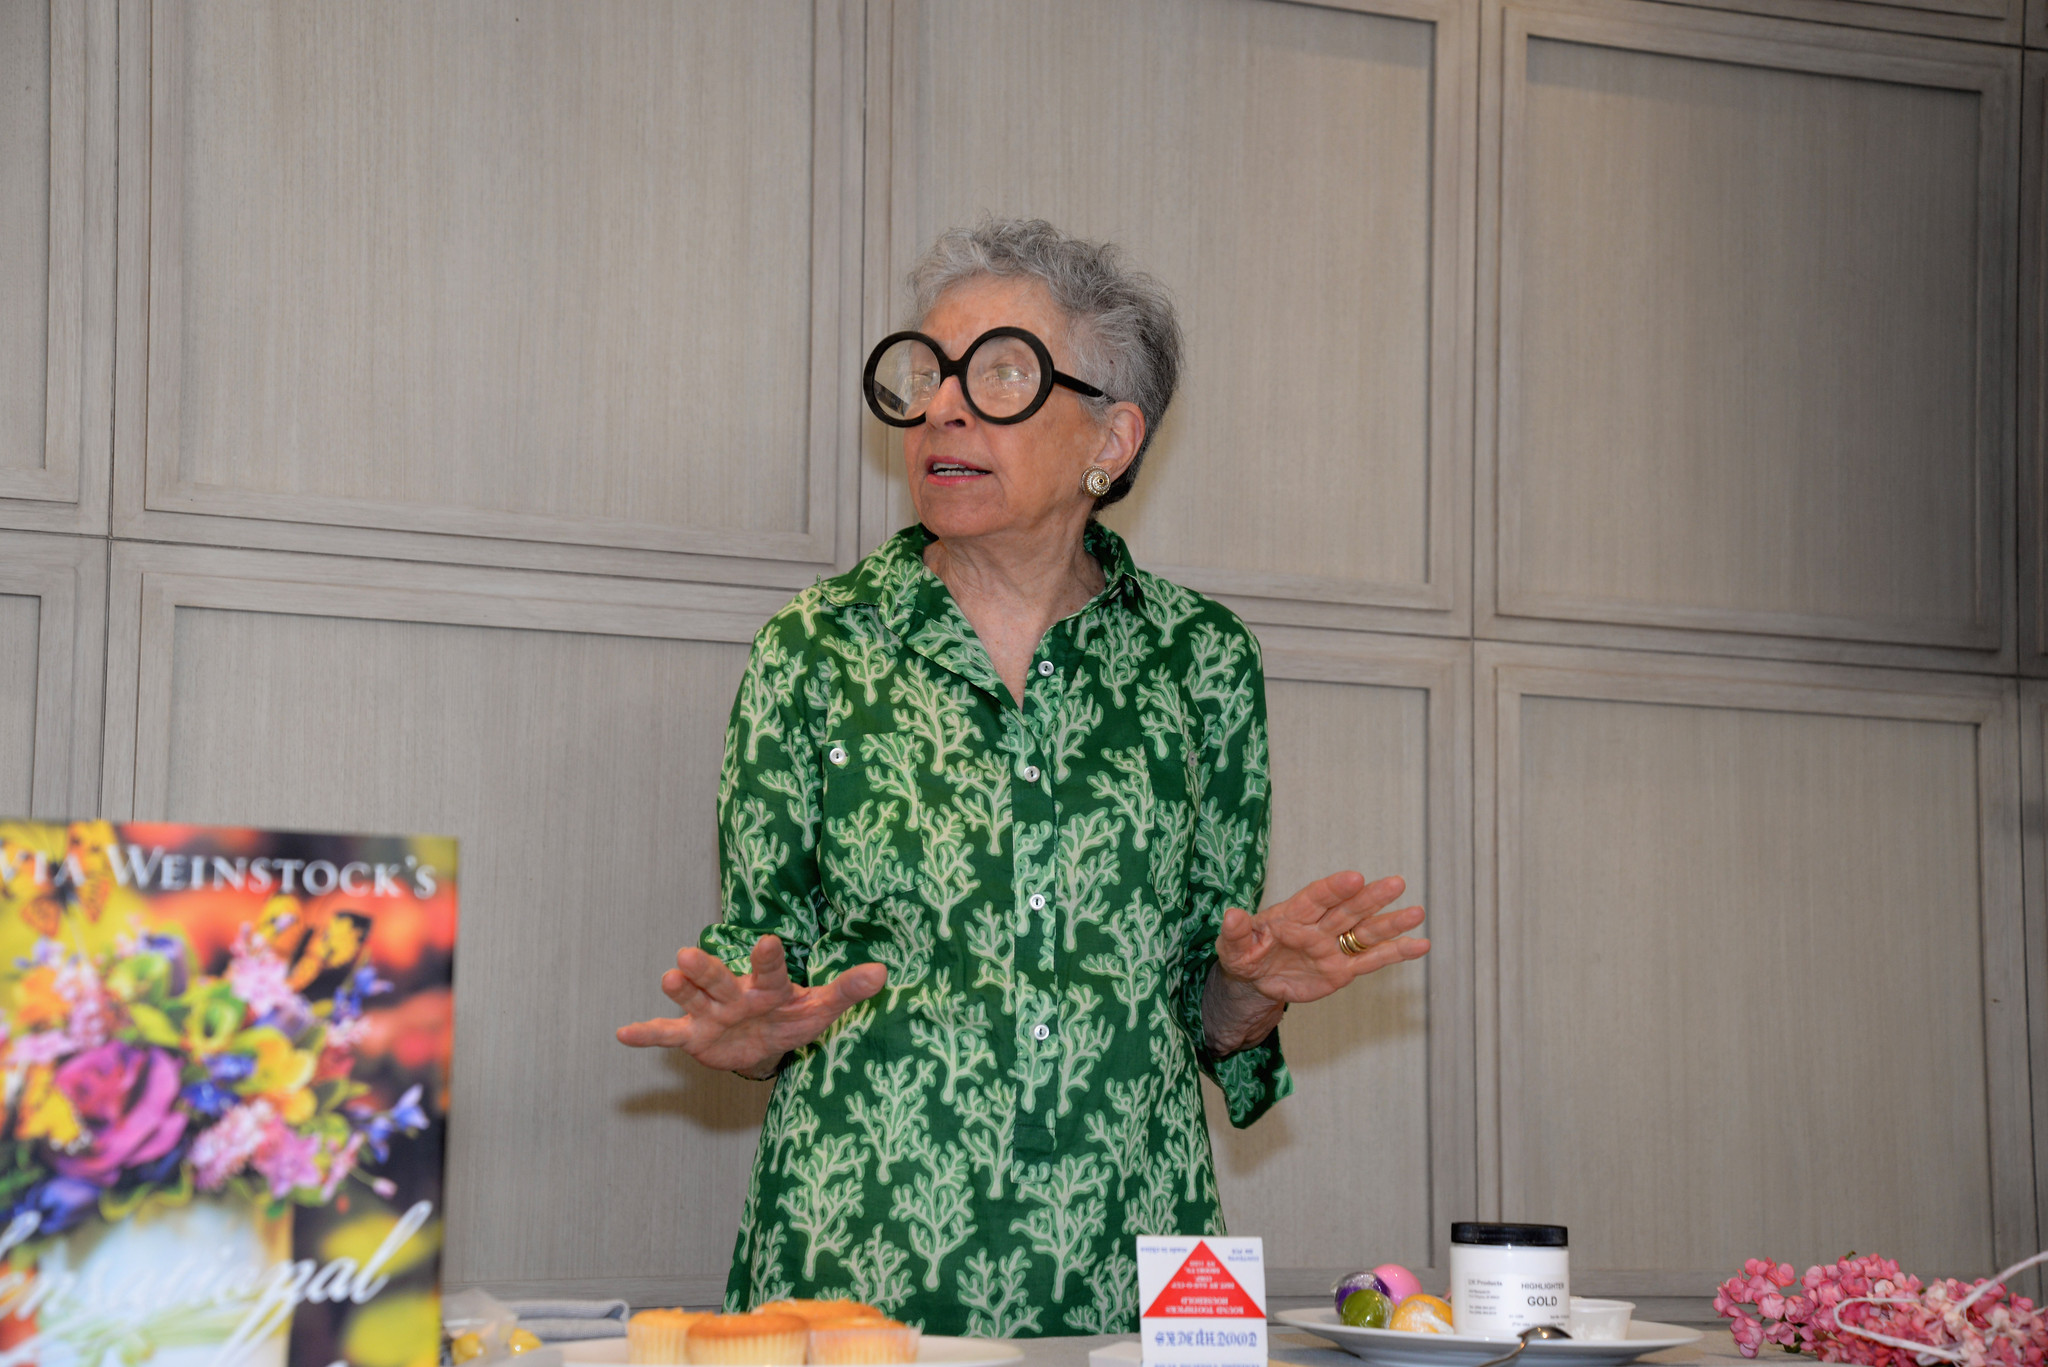 Celebrity-spotting at the South Beach Wine & Food Festival - The Art Of Cake-Decorating: A Master Class With Sylvia Weinstock - Food Network South Beach Wine & Food Festival